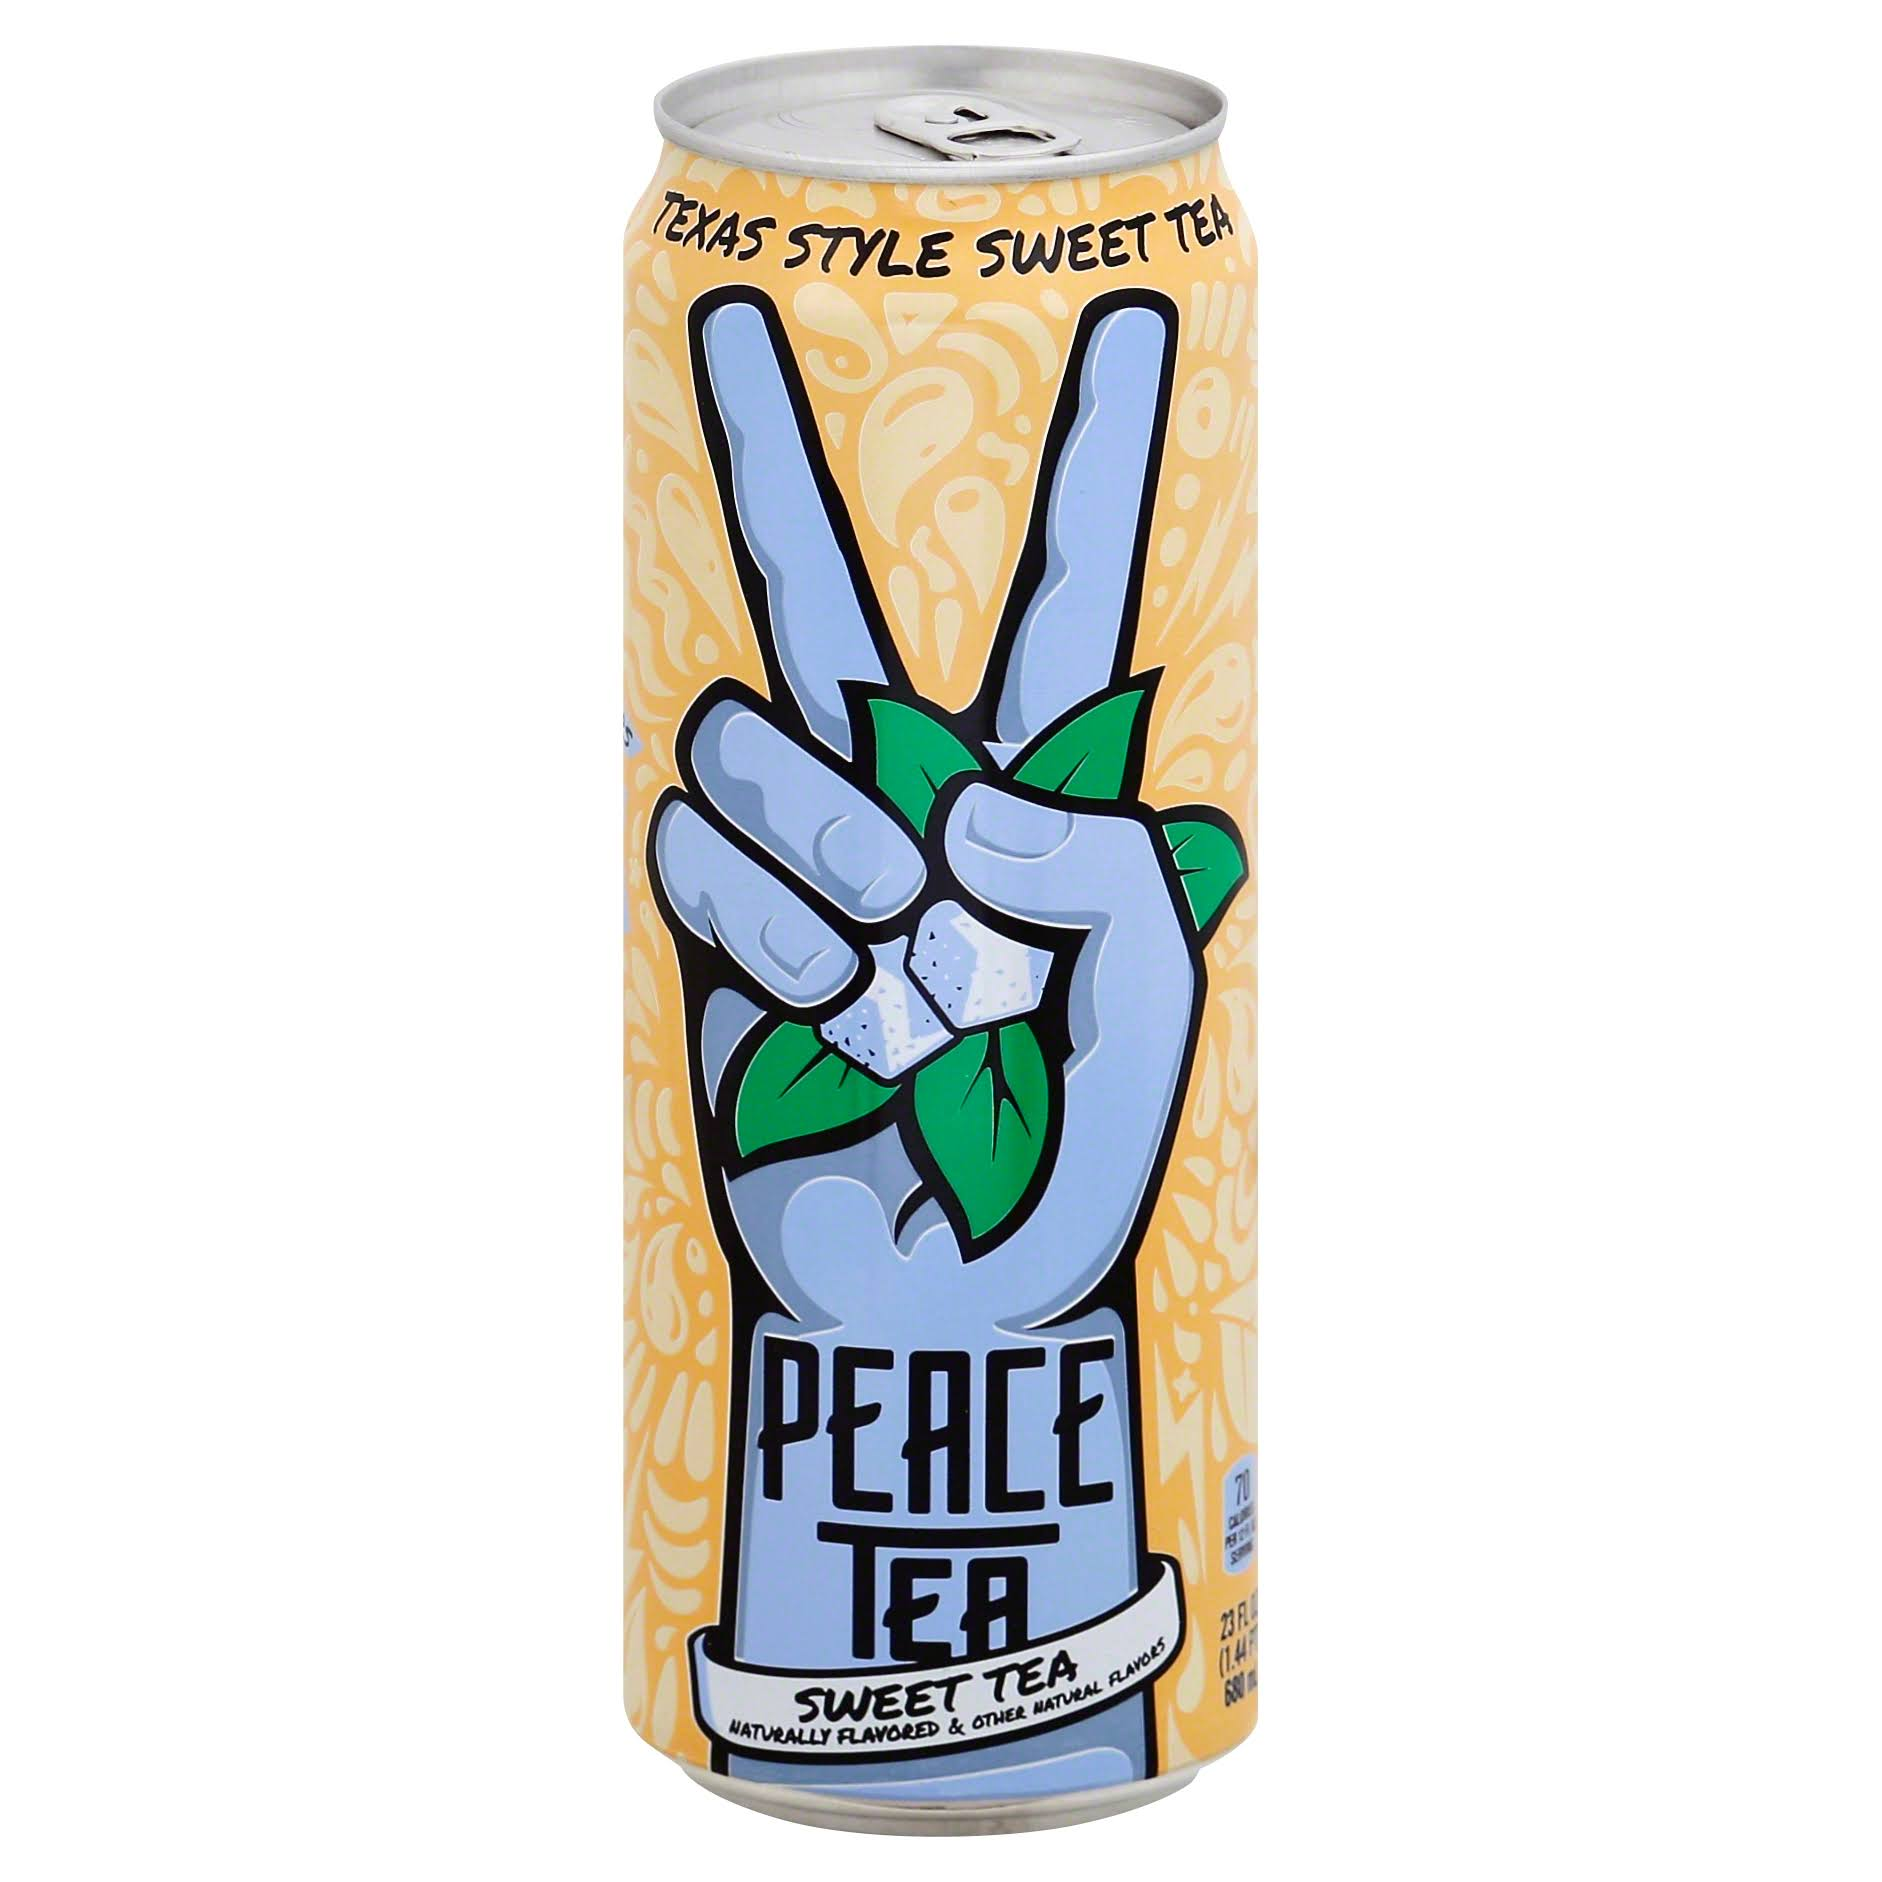 Texas Style Sweet Tea - Peace Tea